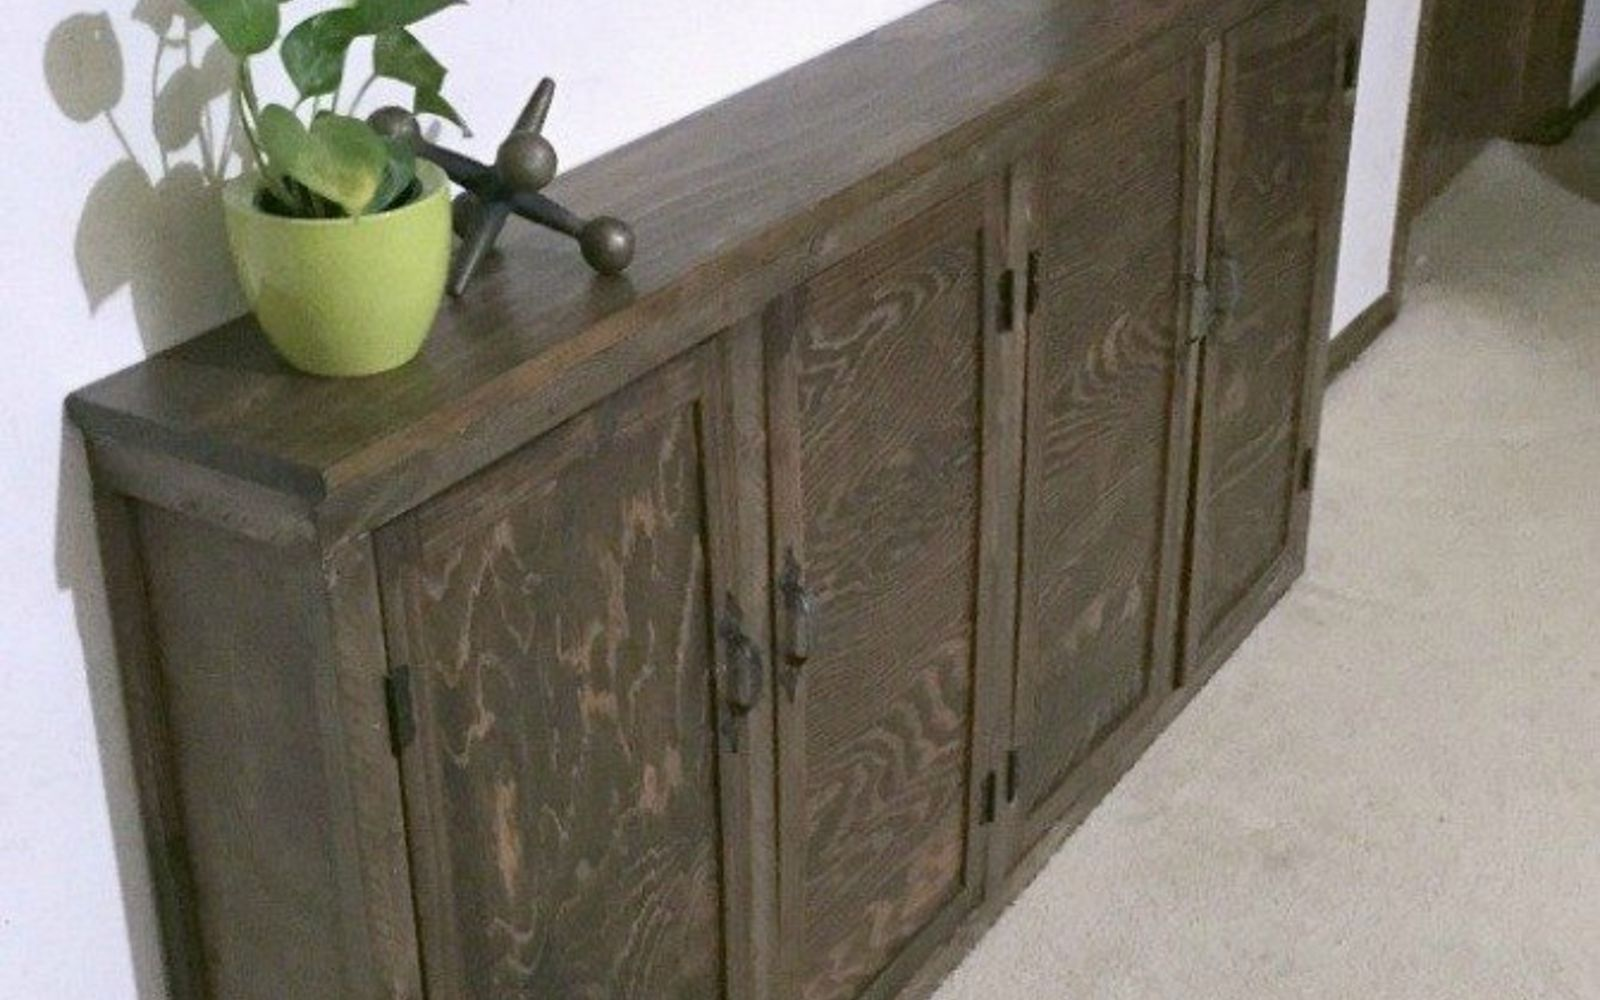 s 9 incredible organizing ideas we wish we d seen sooner, organizing, repurposing upcycling, Her sleek upcycled console cabinet